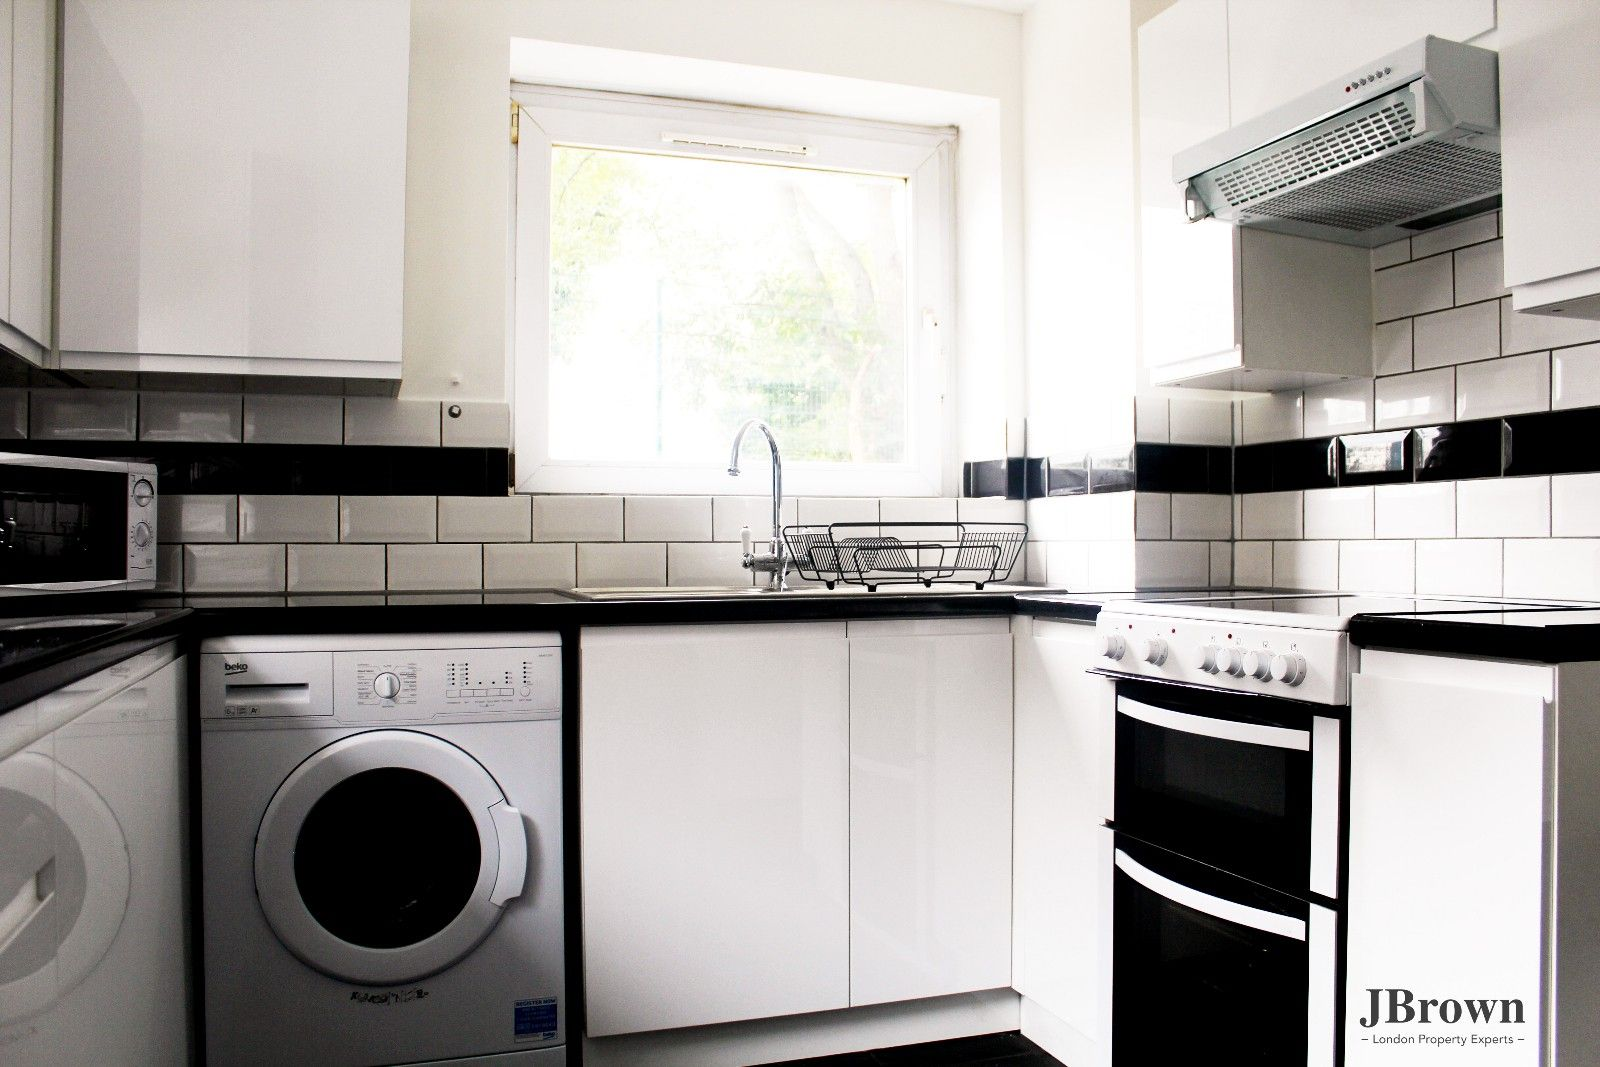 3 bed house to rent in Whitear Walk, E15